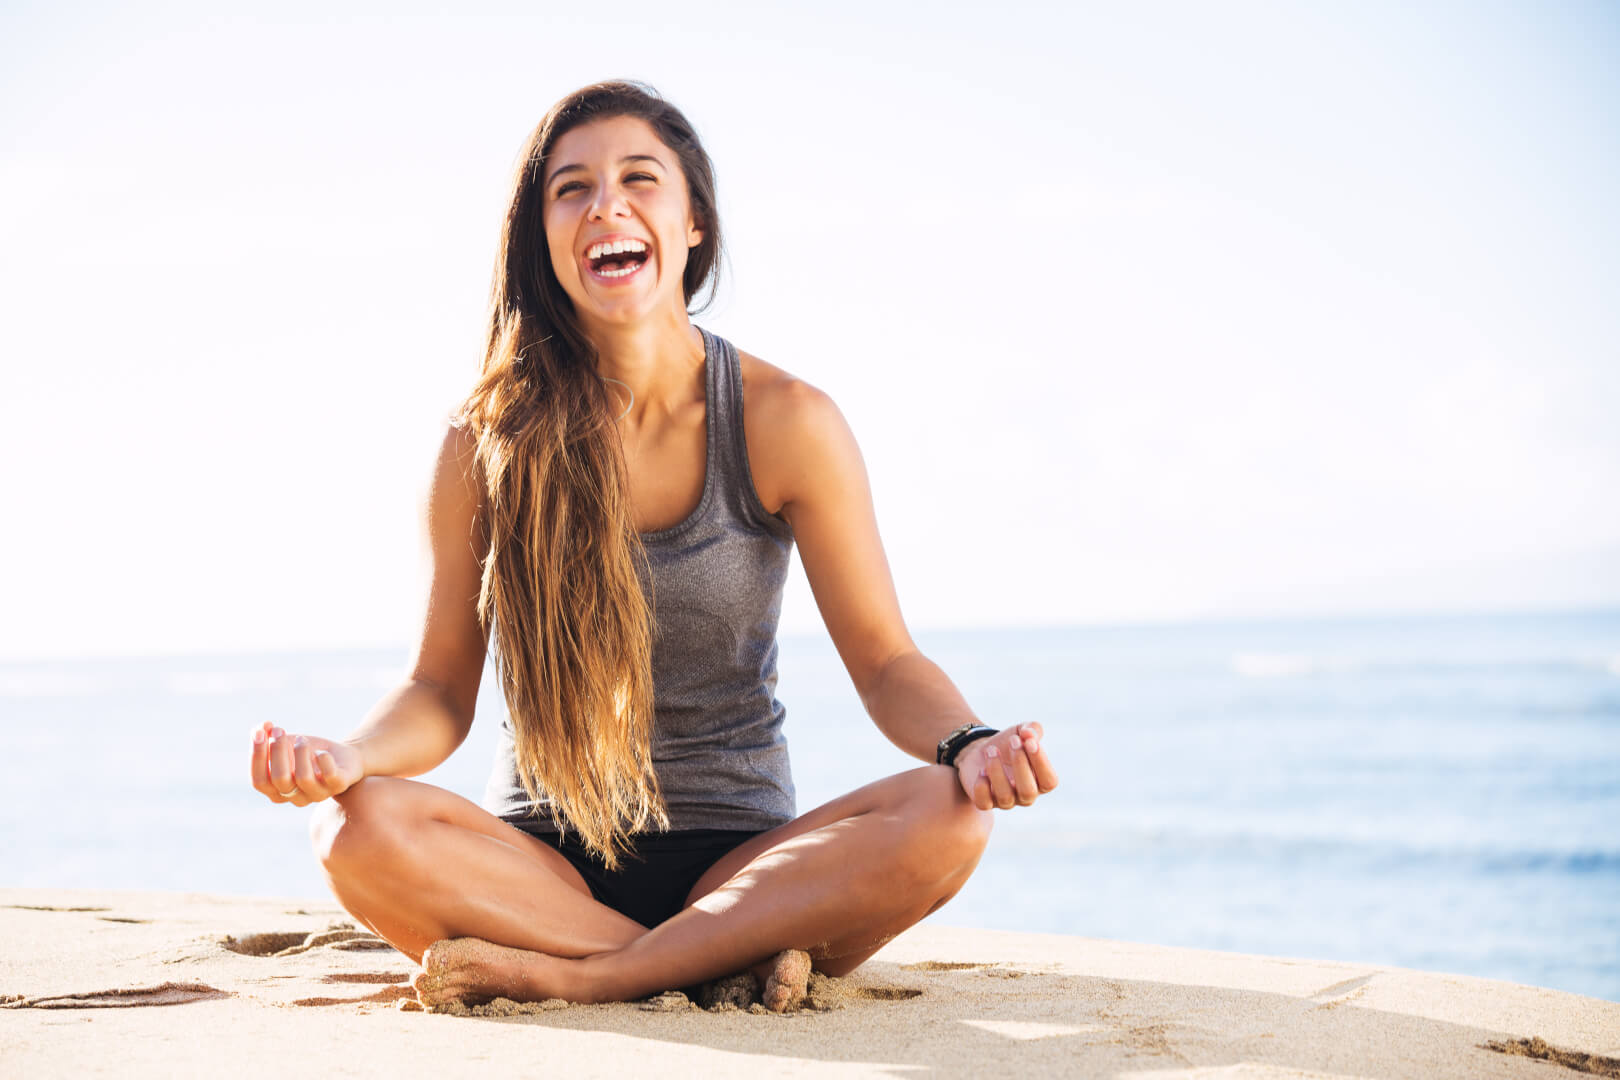 alcohol facilities san diego young female yoga pose smile laugh ocean